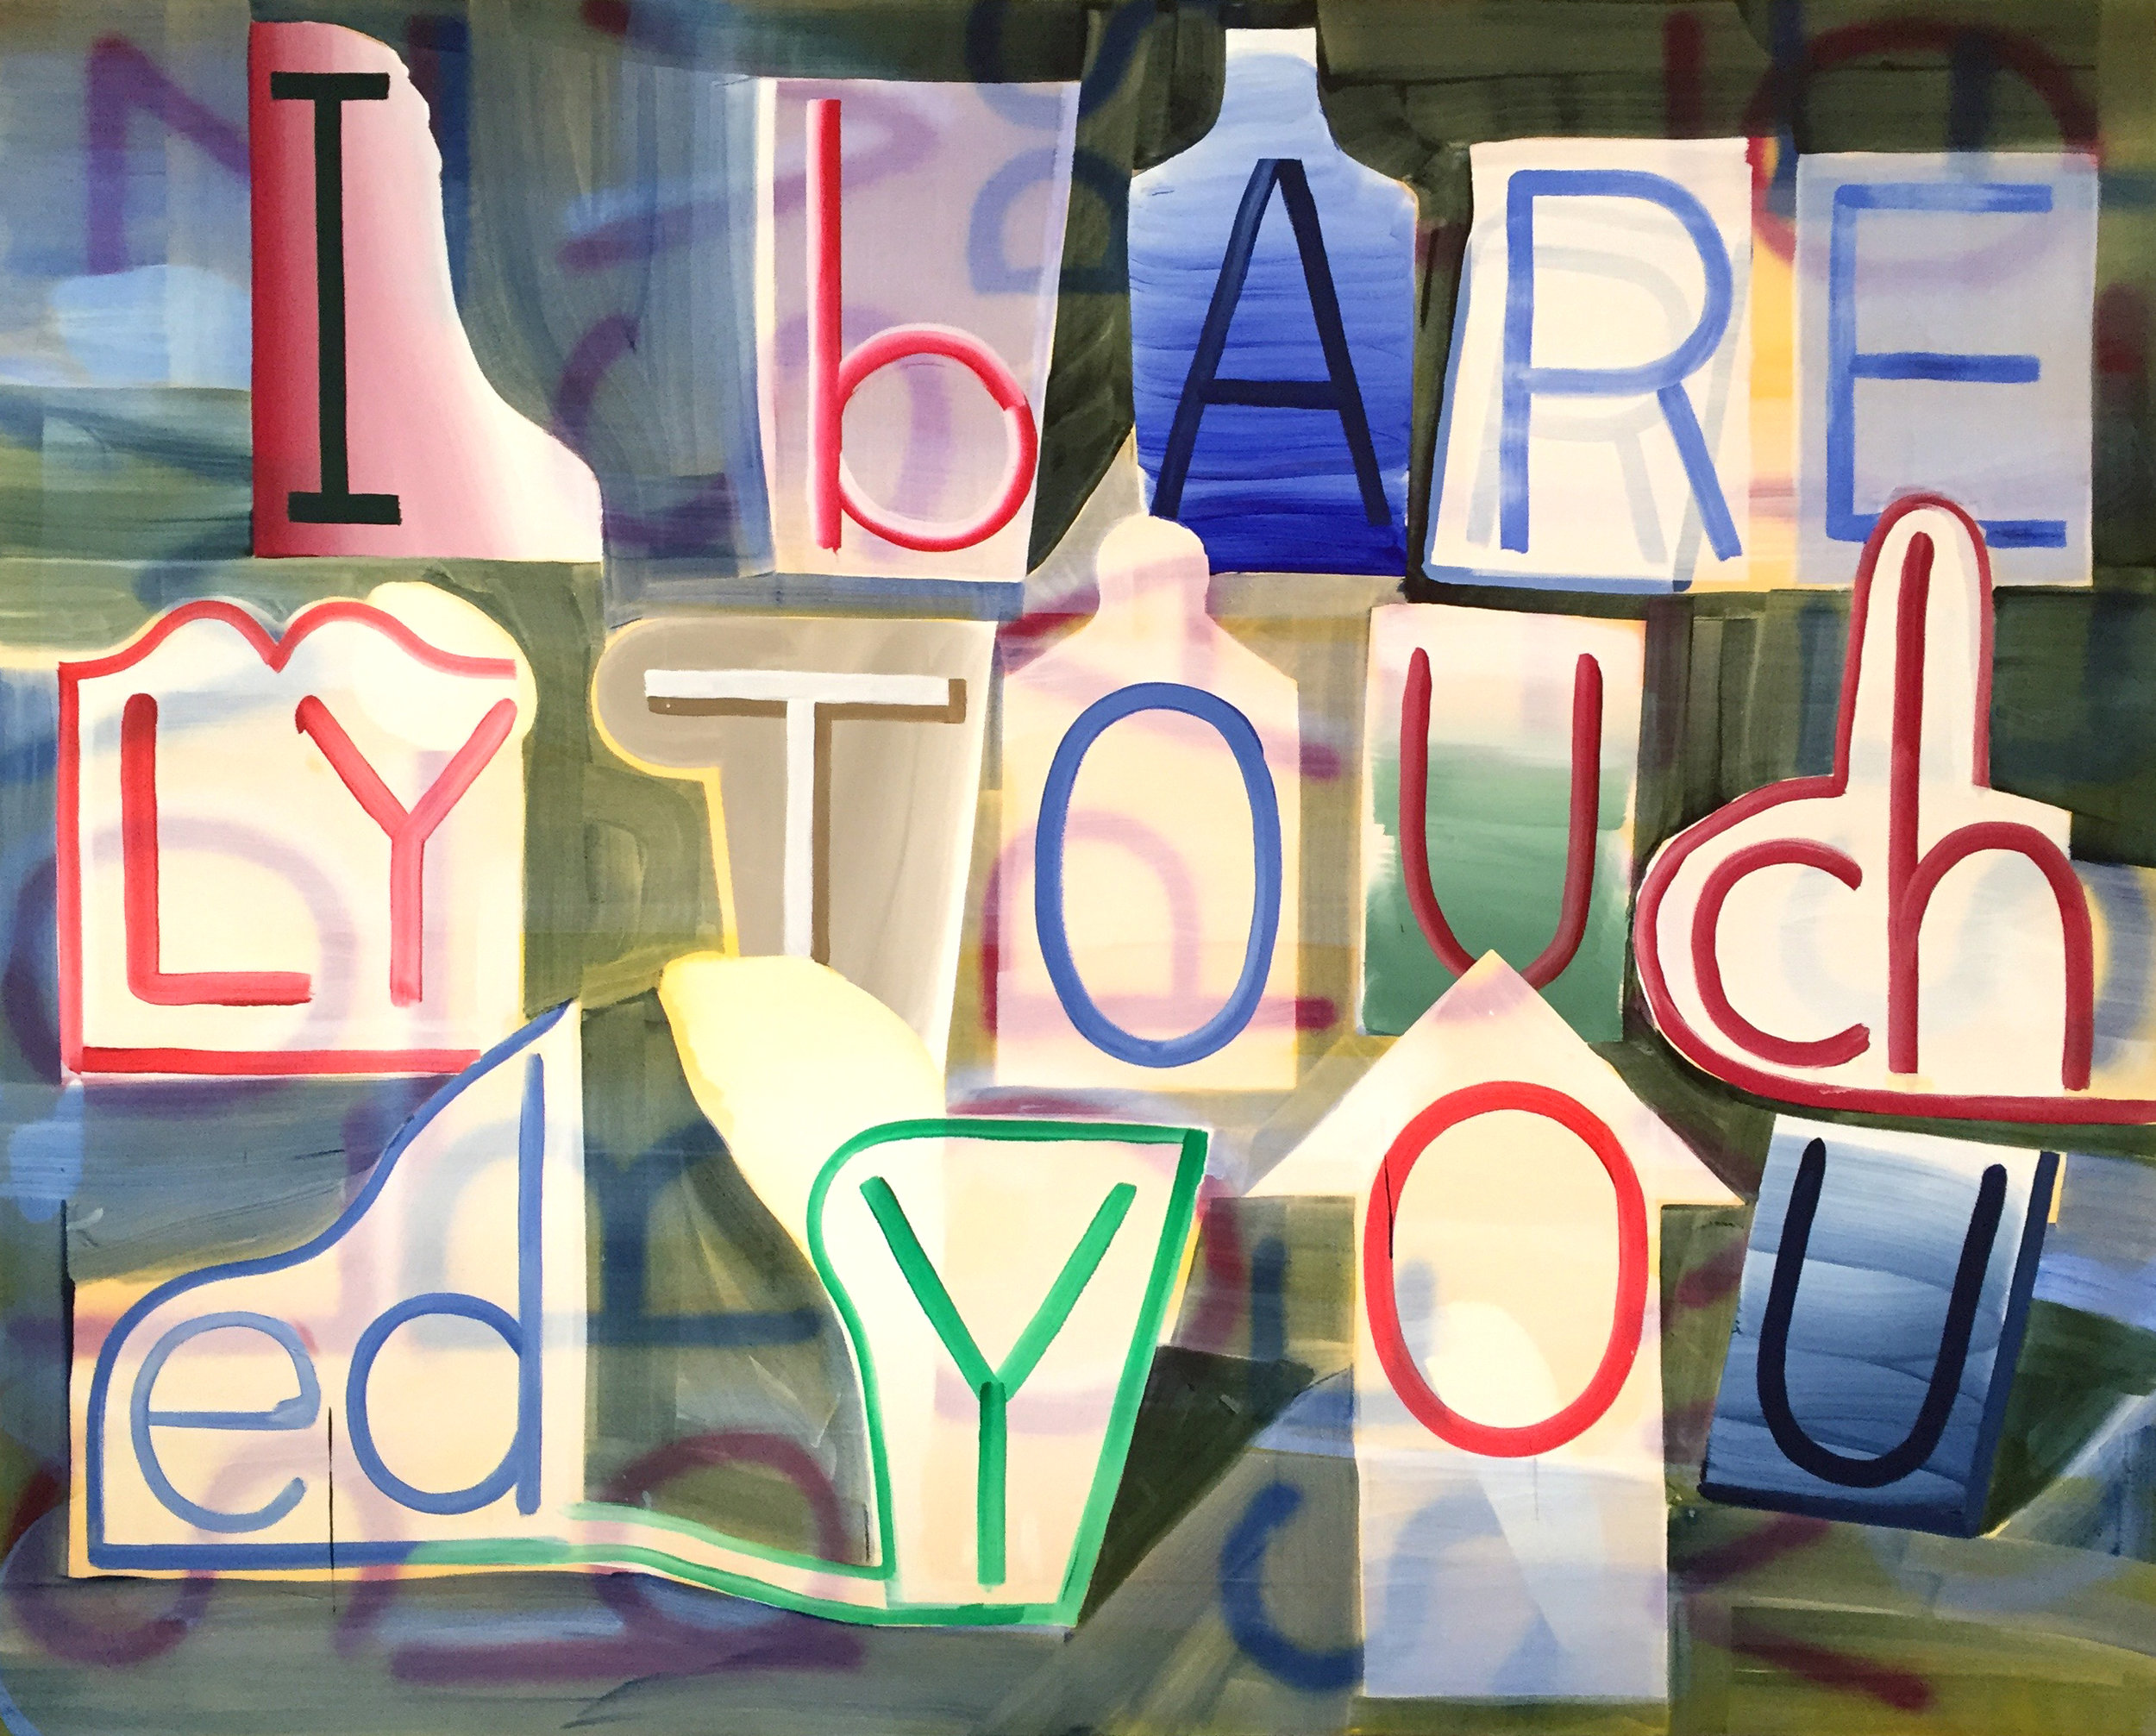 Graham Gillmore, I Barely Touched You, 2017, Acrylic on canvas, 72h x 90w in.